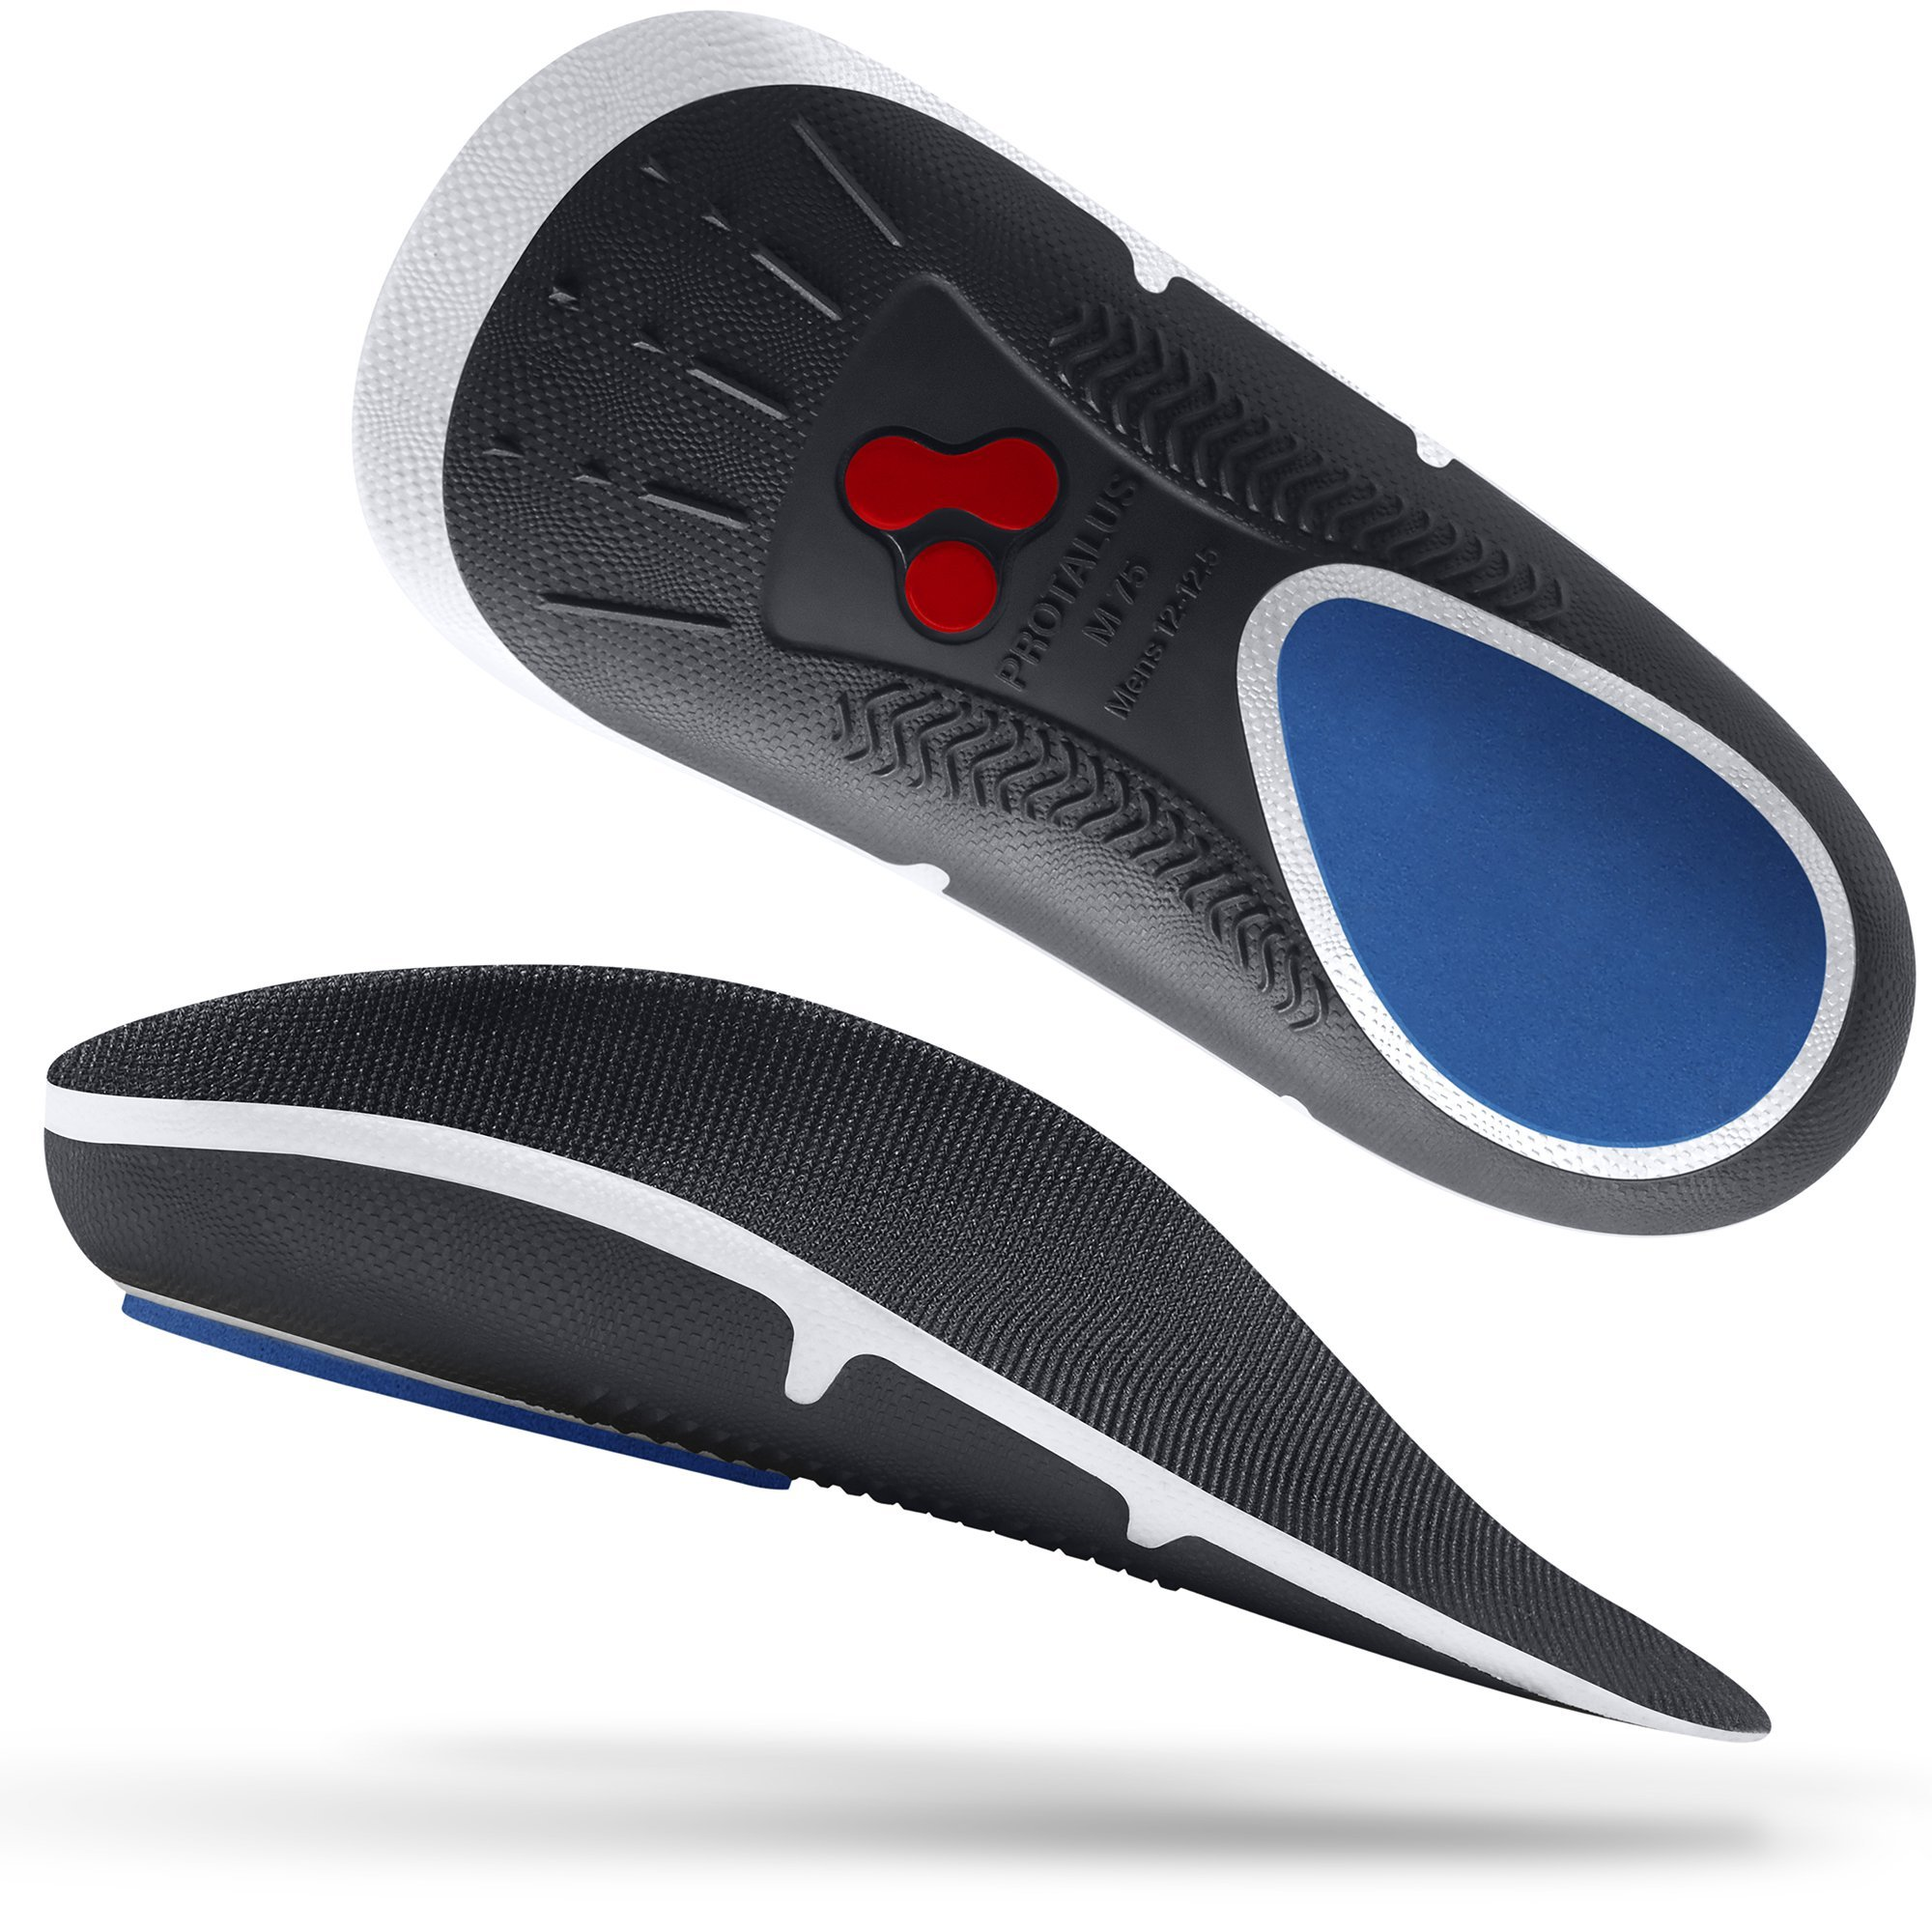 M75 - Pain Relief for Foot, Knee, Hip, Back, and Plantar Fasciitis